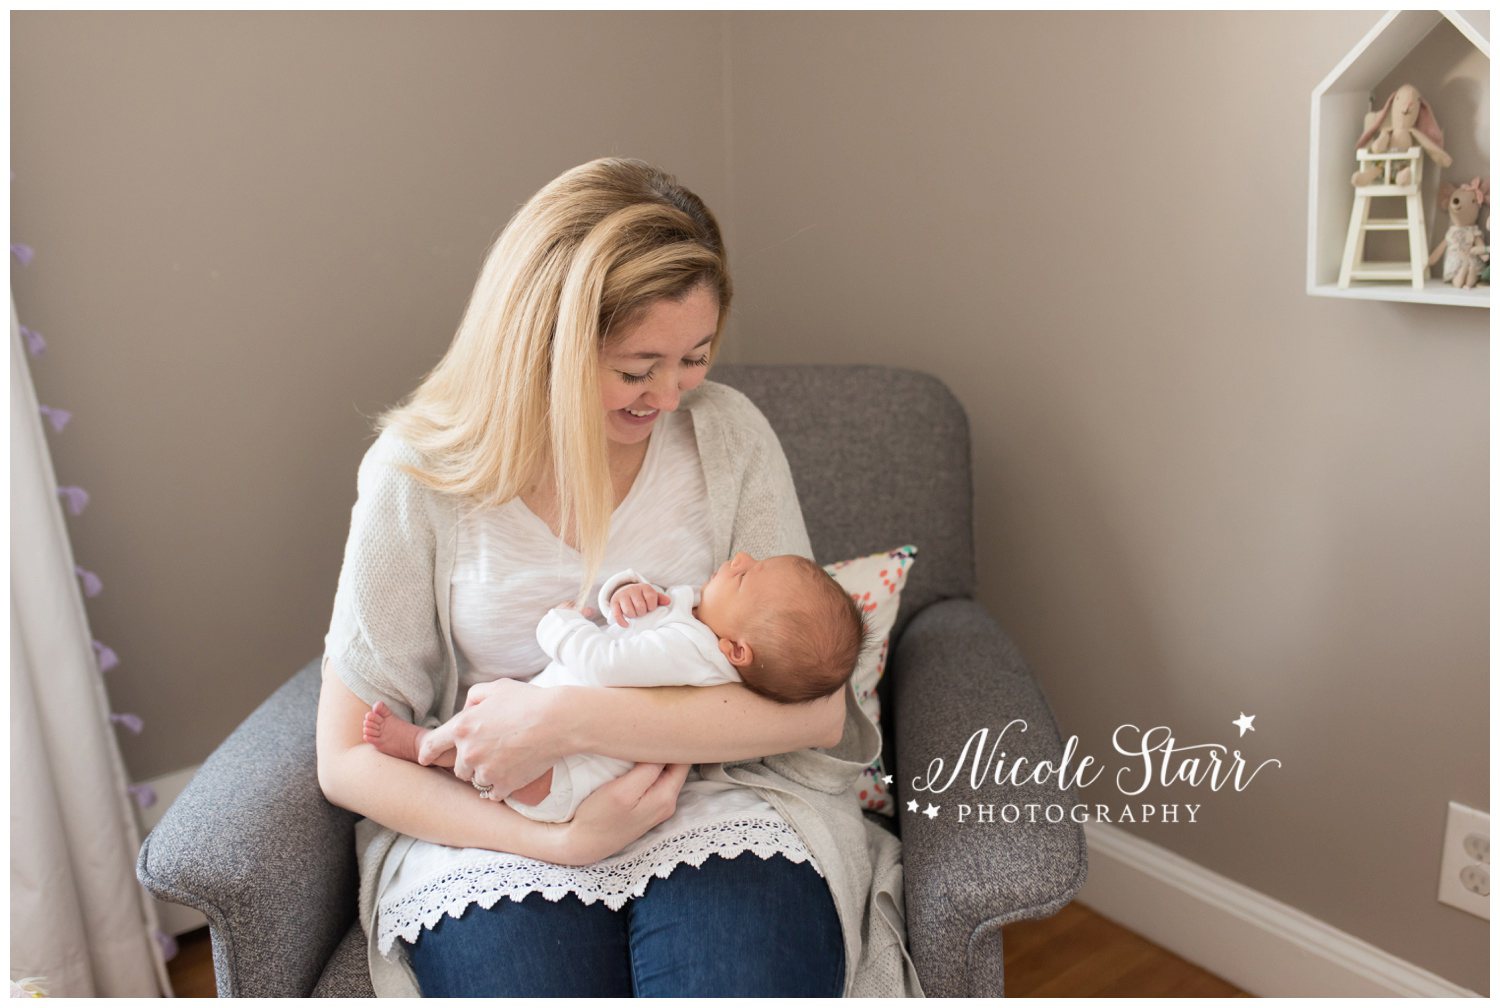 Nicole Starr Photography | Saratoga Springs Newborn Photographer | Boston Newborn Photographer | Saratoga Springs Lifestyle Newborn Photographer | Boston Lifestyle Newborn Photographer  |  Albany Newborn Photographer  |  Albany Lifestyle Newborn Photographer